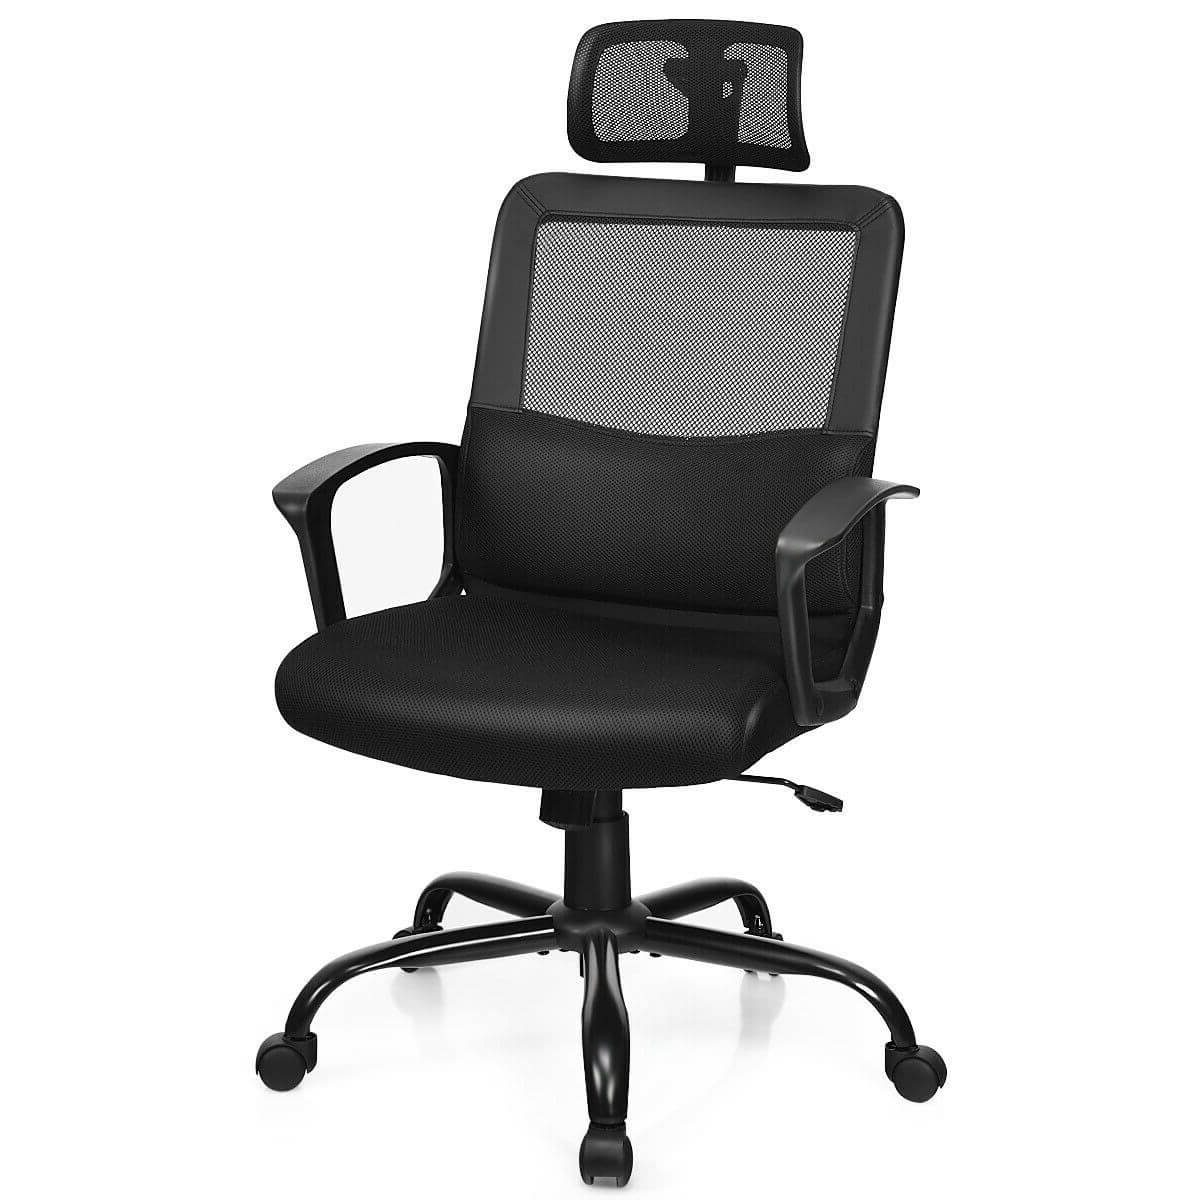 Best Budget Office Chair + 34 Contenders (last updated now)